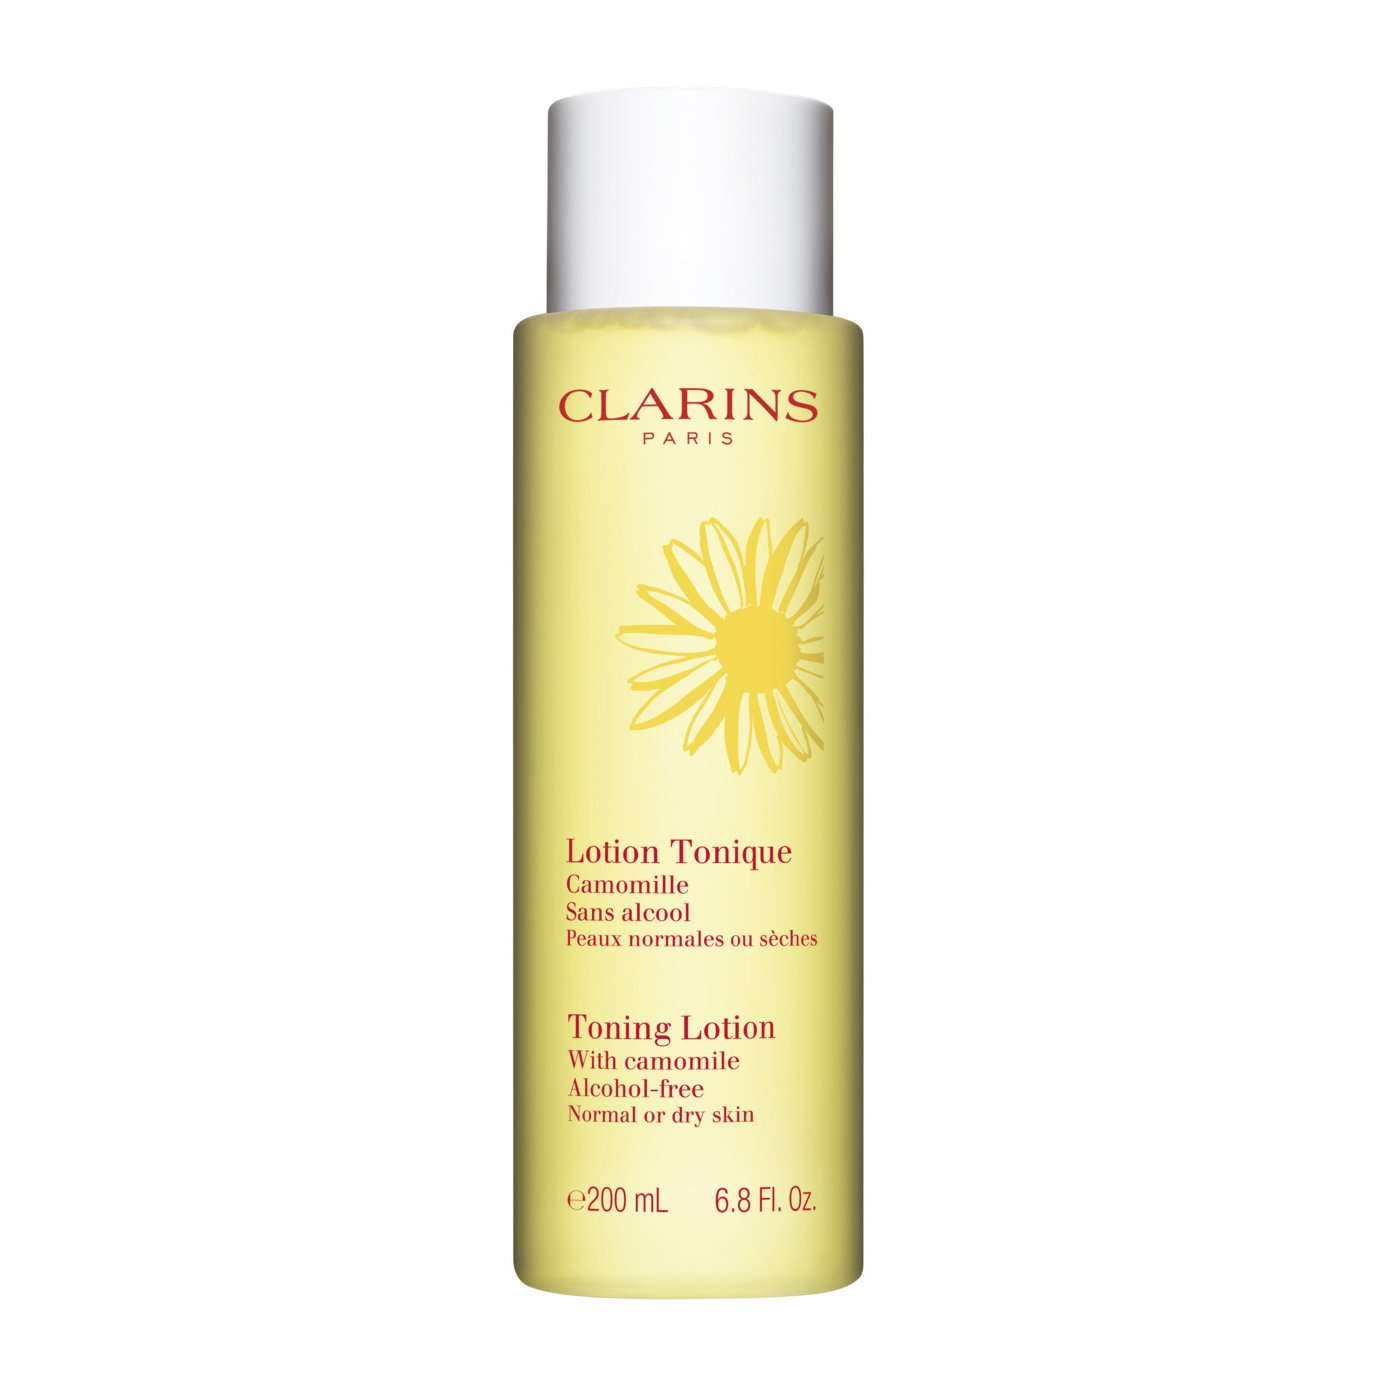 Toning Lotion with Camomile